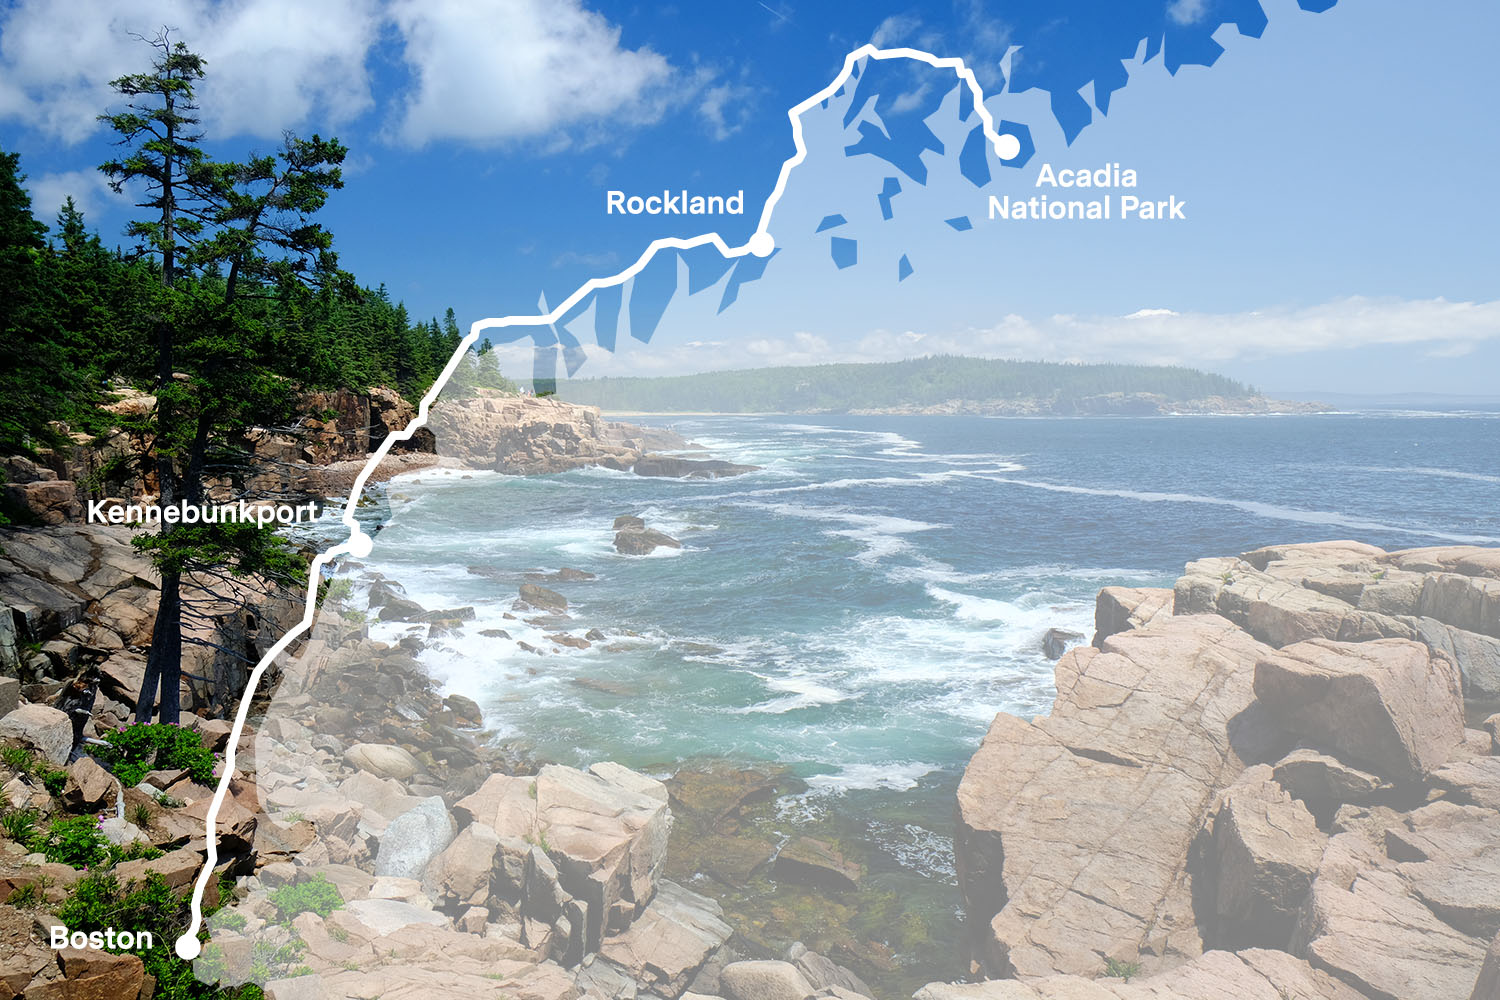 The Best Scenic Drive in New England is US 1 from Boston to Acadia National Park